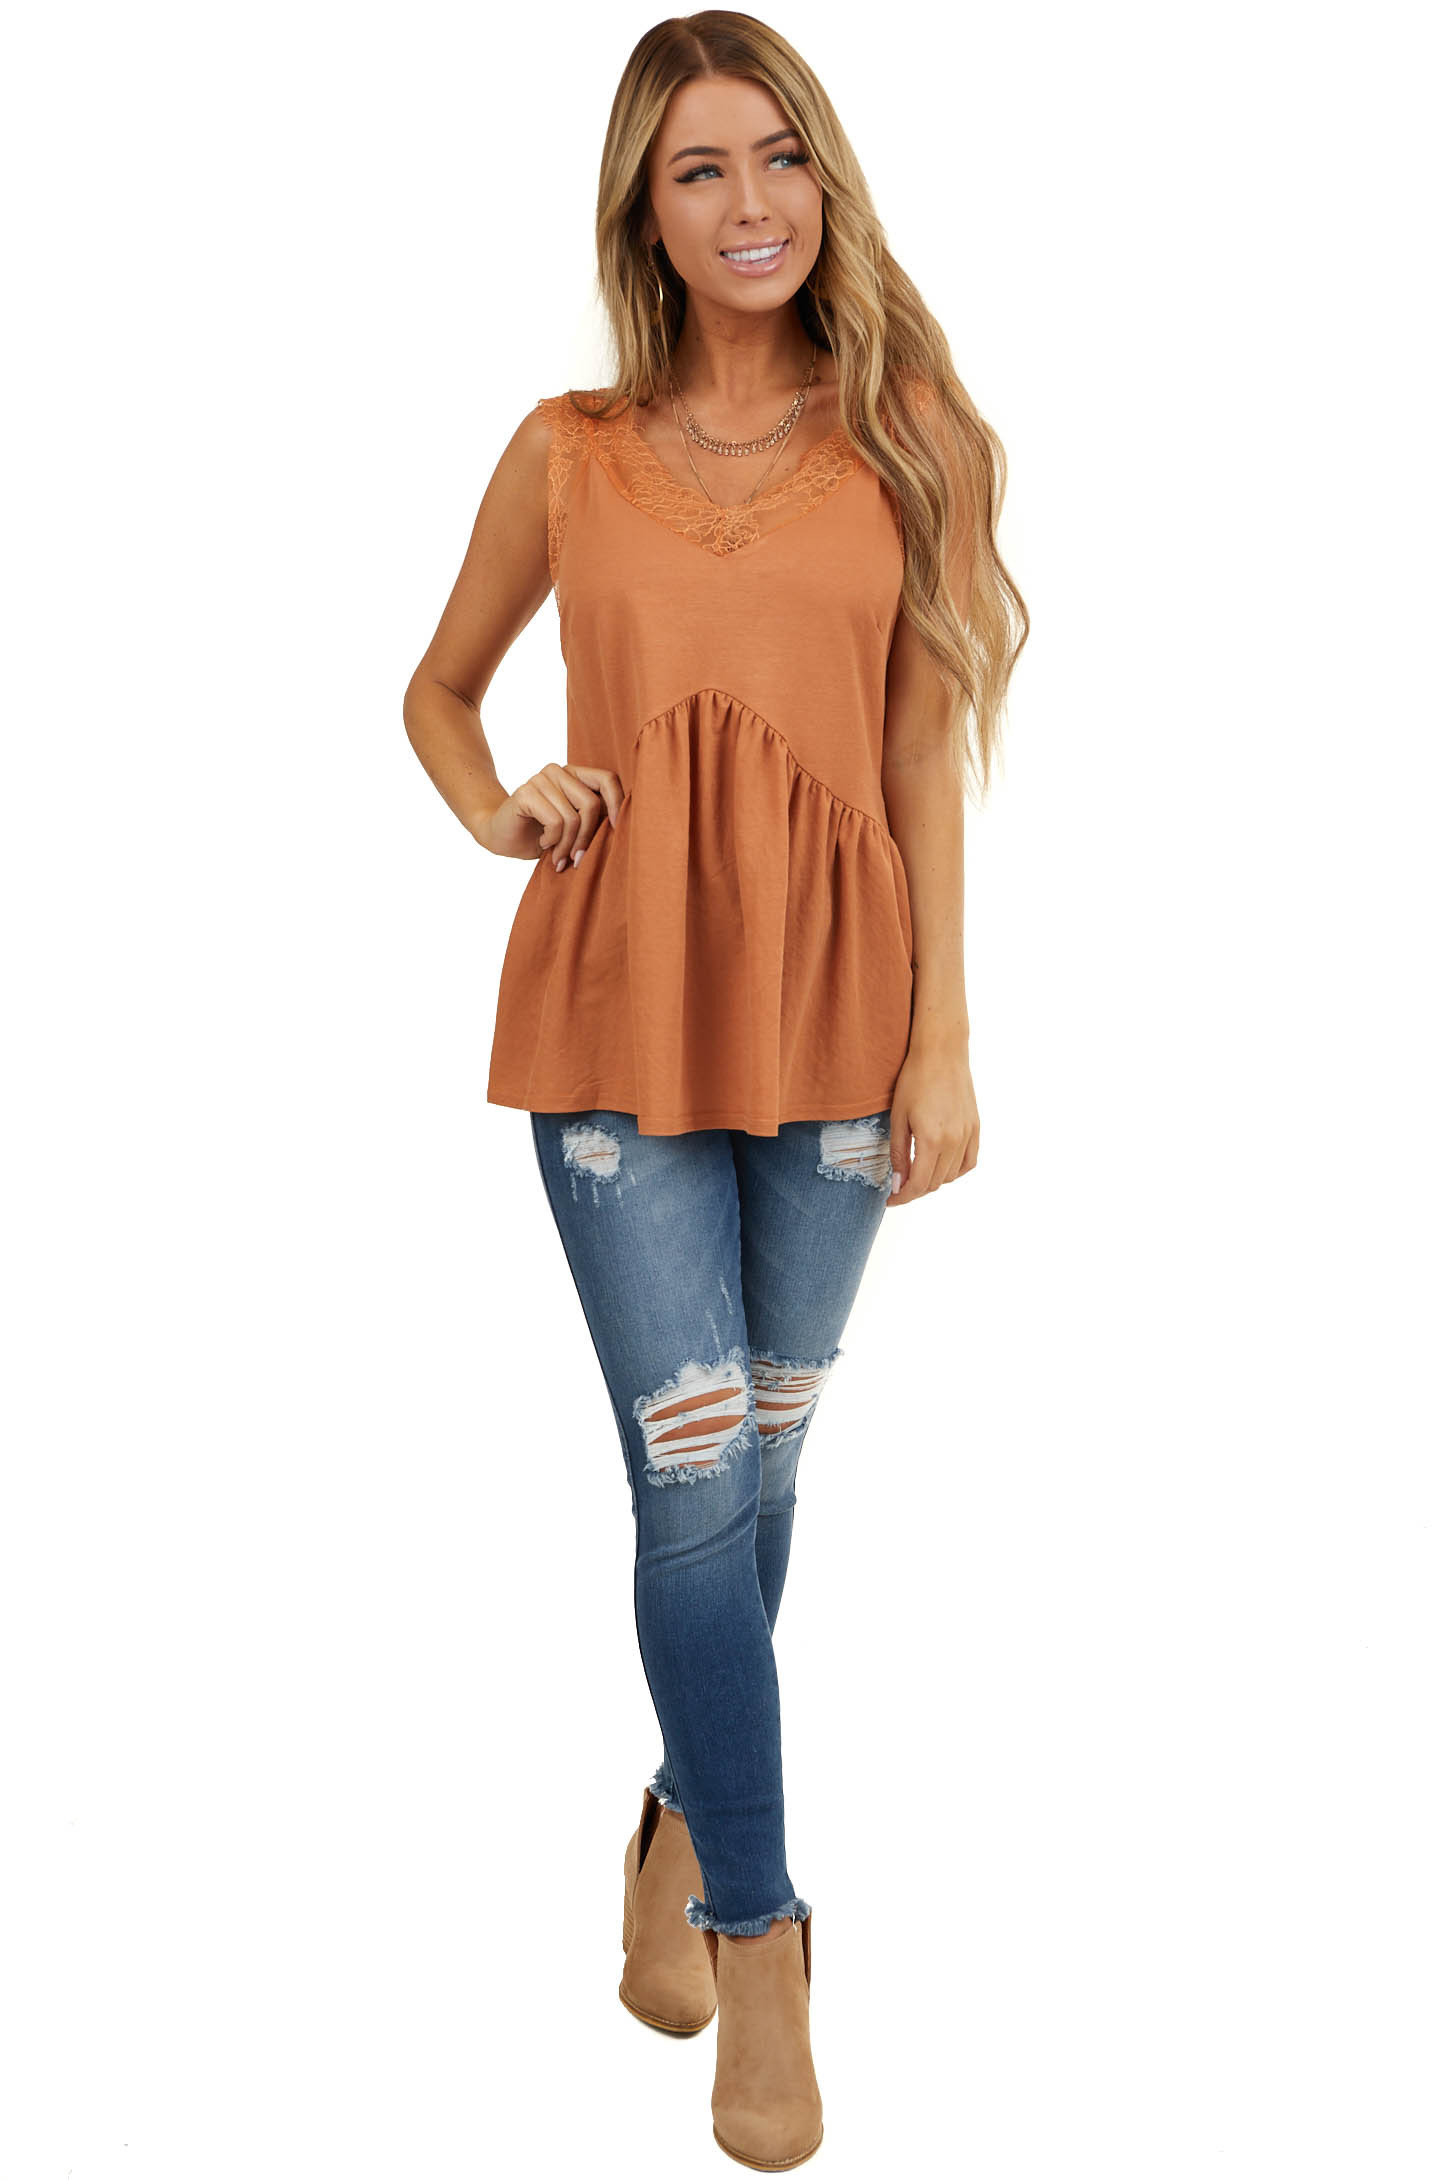 Terracotta Sleeveless V Neck Top with Eyelash Lace Detail